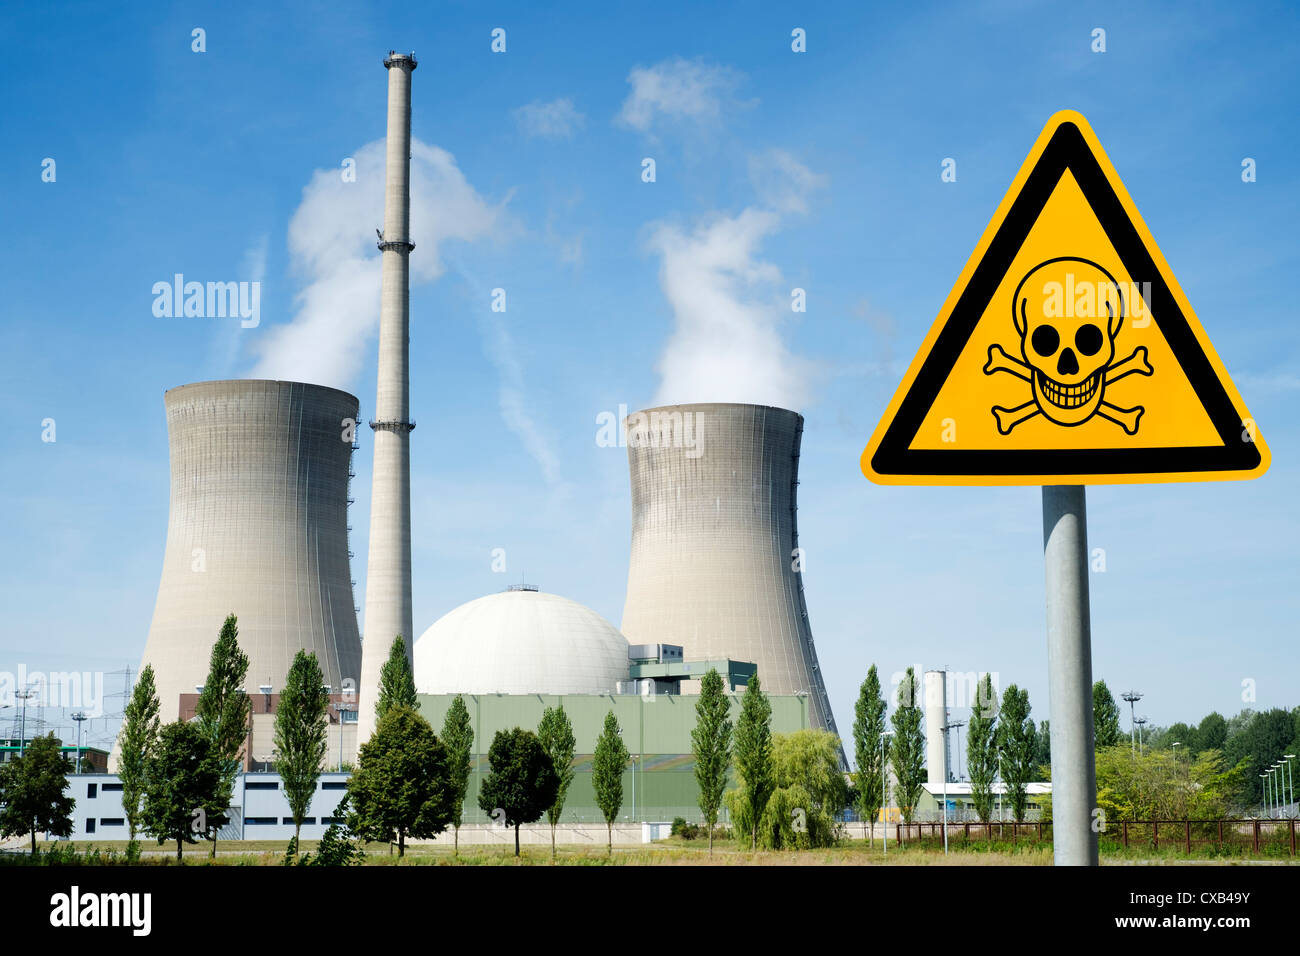 Danger sign with skull at Grafenrheinfeld nuclear power station in Germany - Stock Image